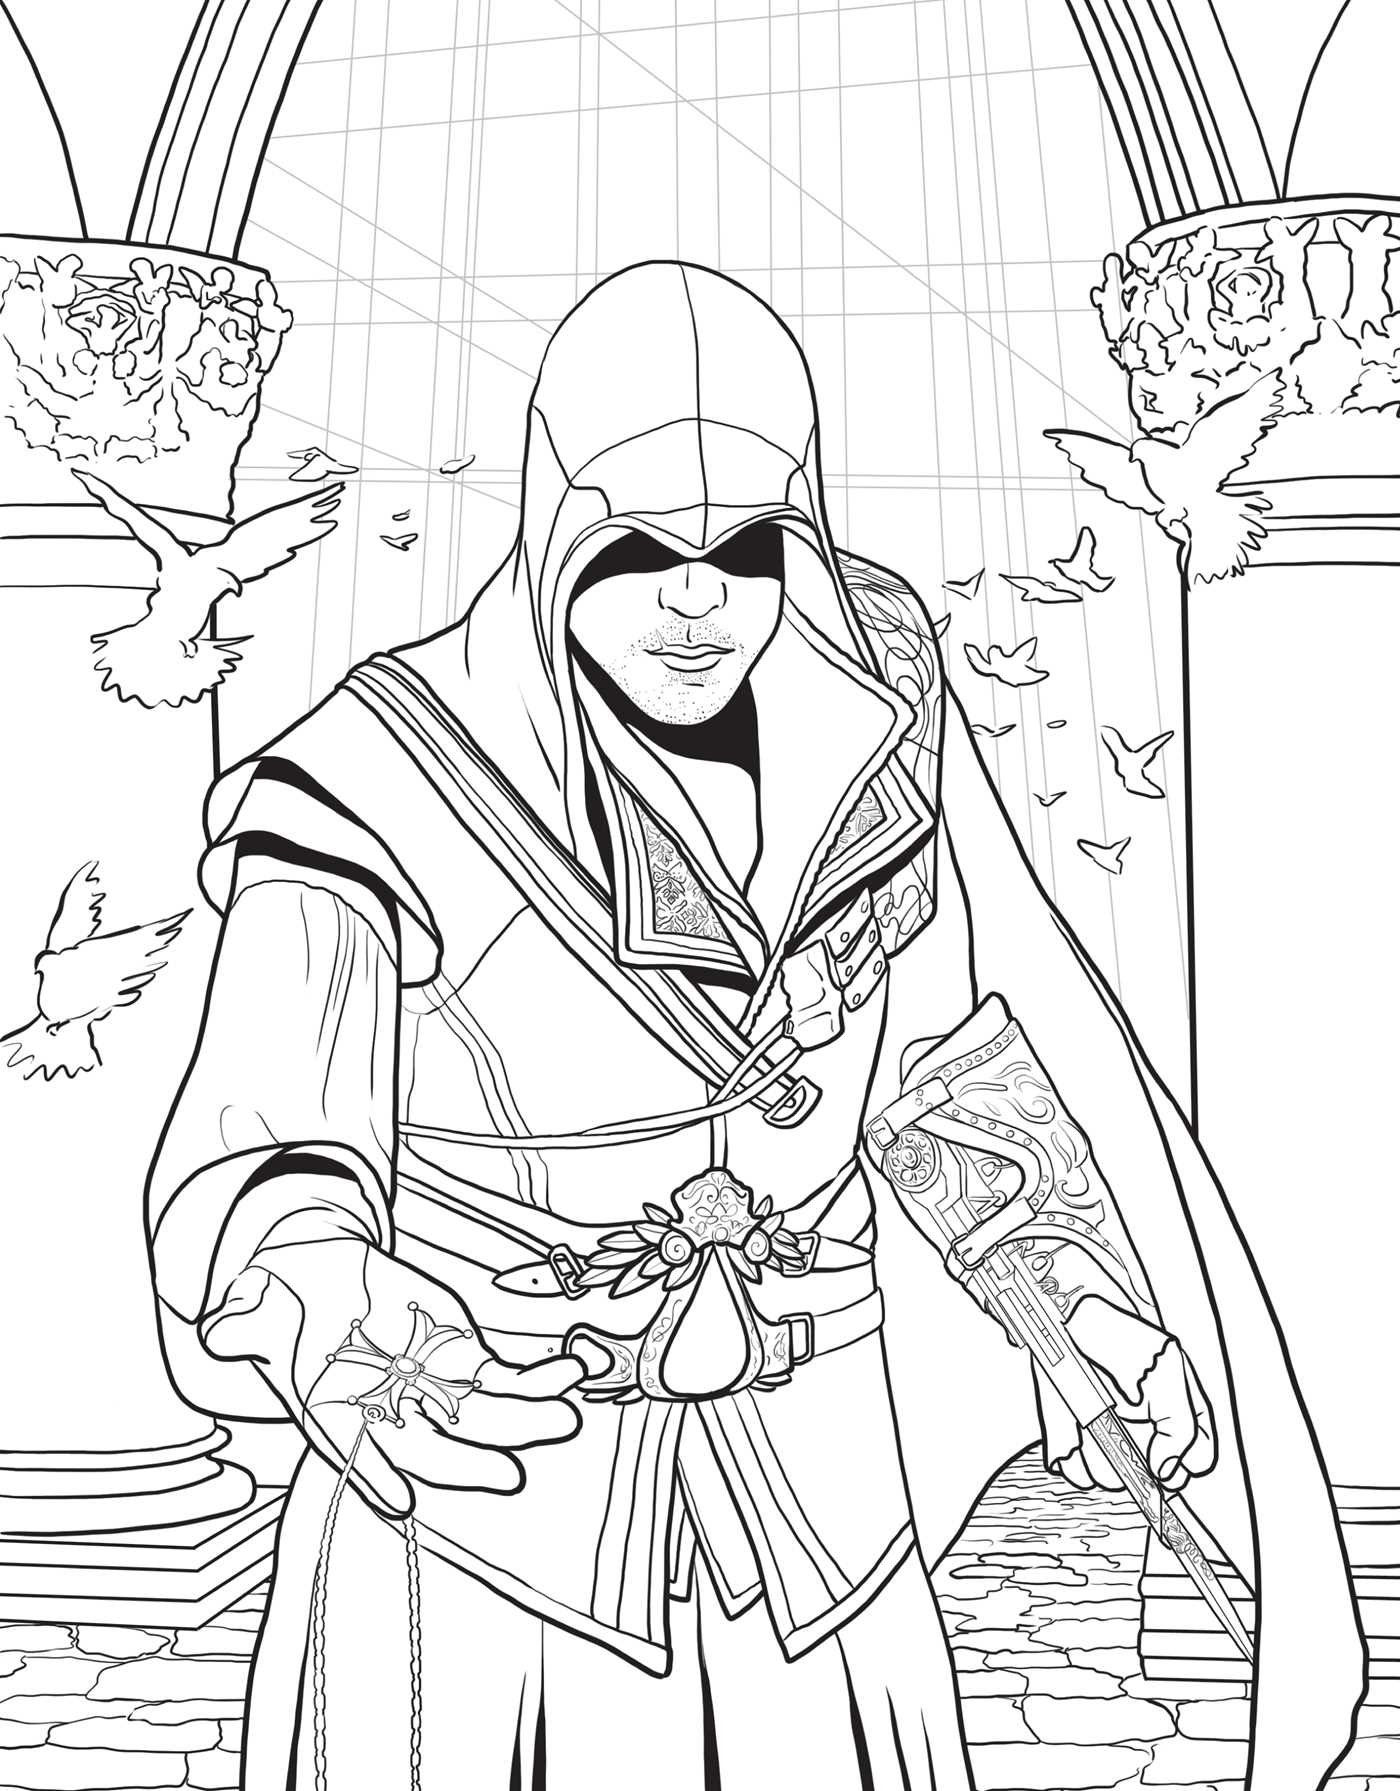 Coloring book download zip - Assassin S Creed The Official Coloring Book Insight Editions 9781608878635 Amazon Com Books